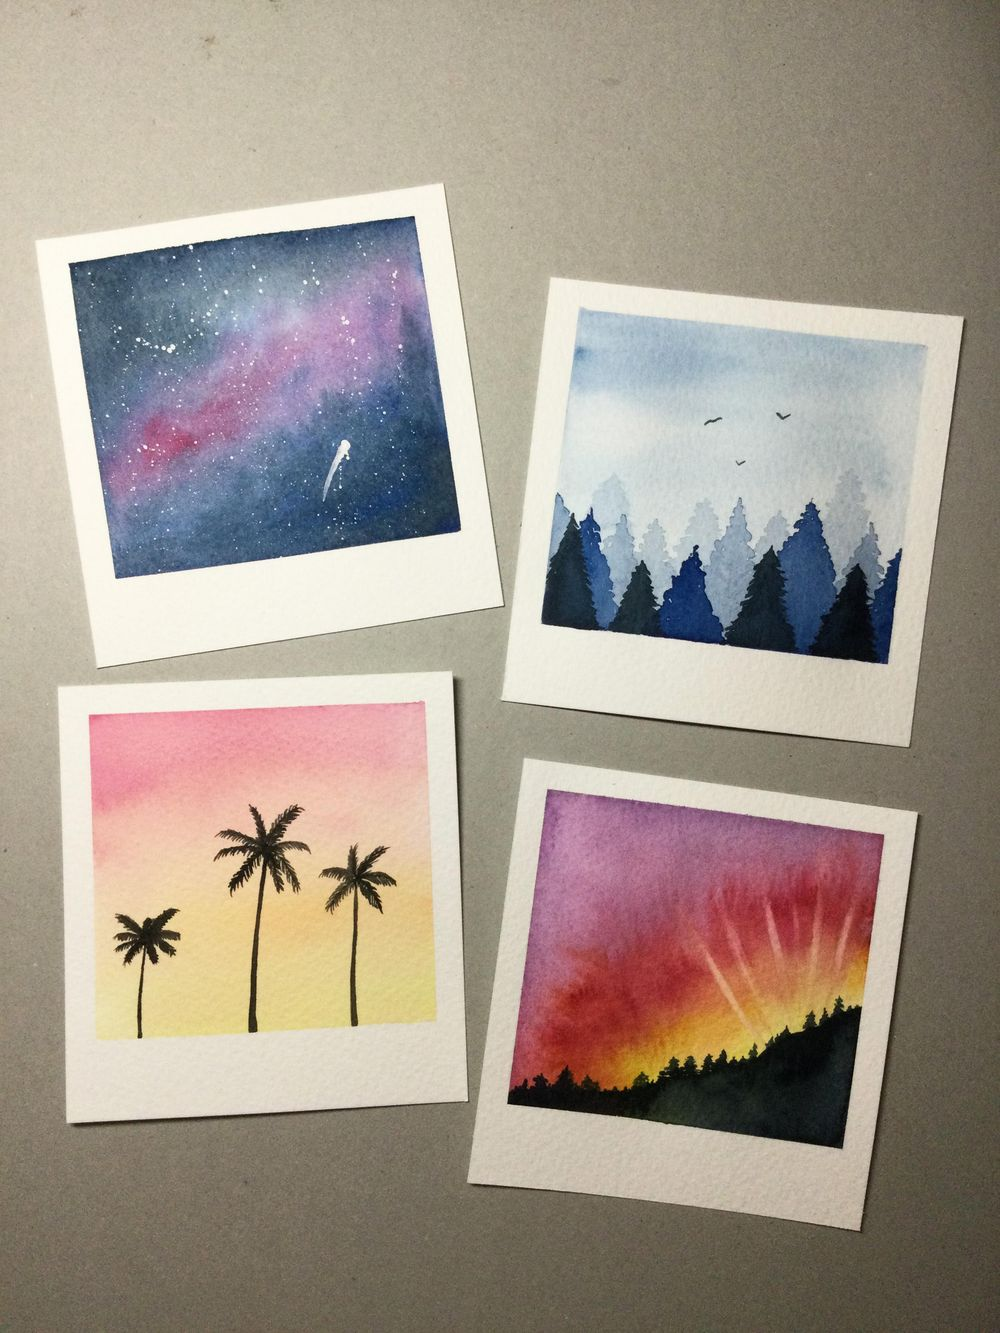 Bookmarks and polaroids - image 2 - student project